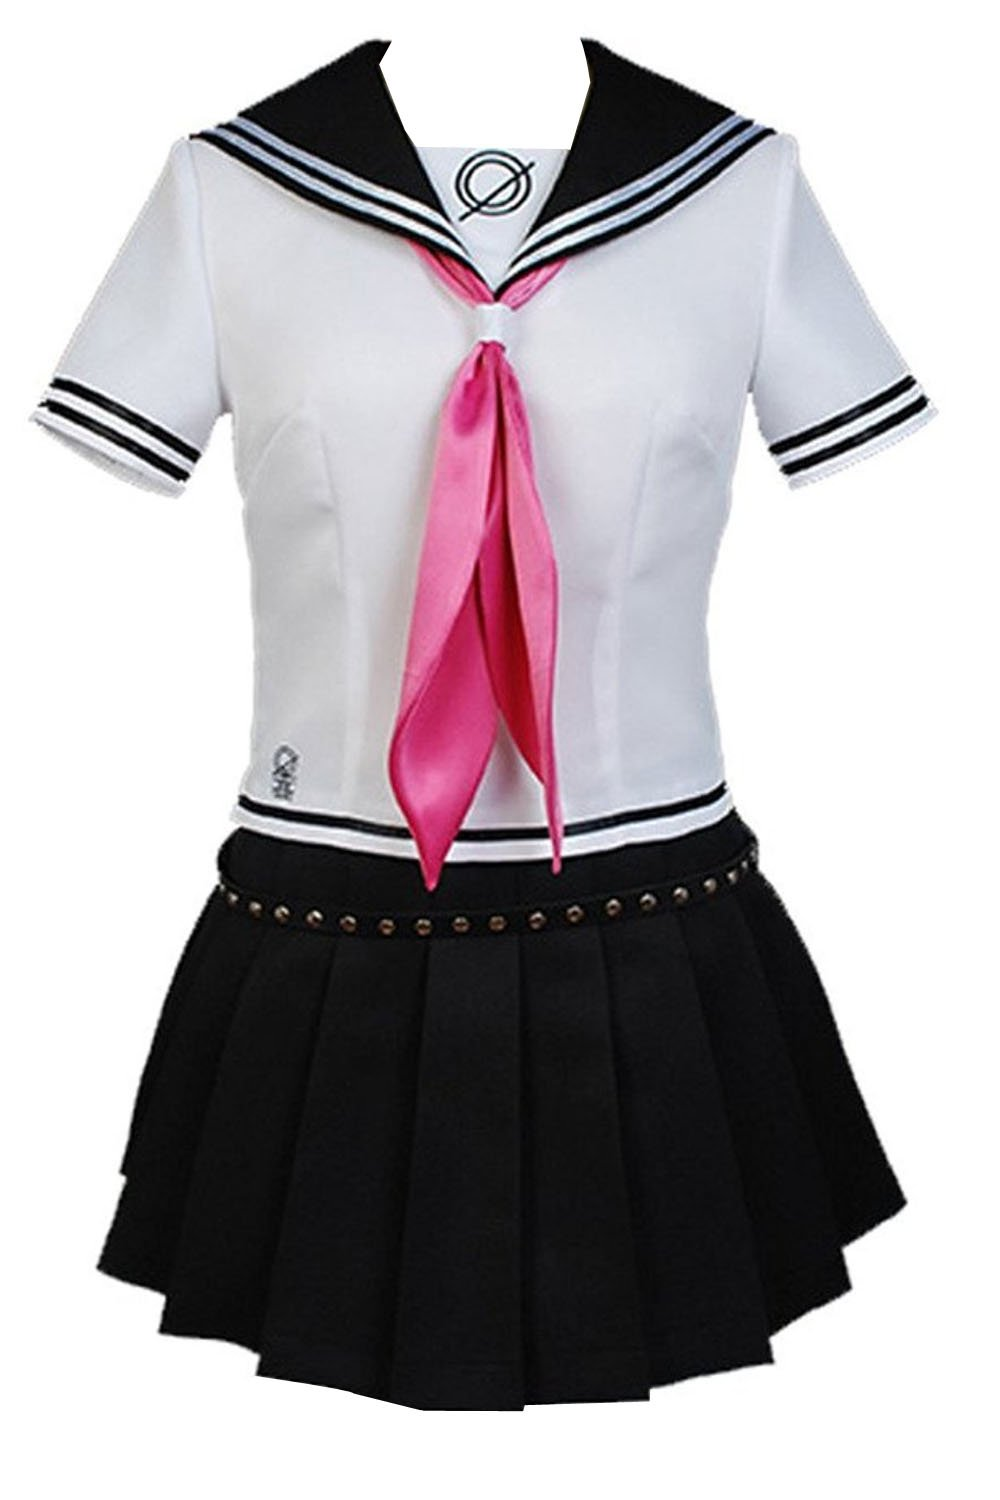 Amazon.com : Cfalaicos Danganronpa Ibuki Mioda Styled Long ...